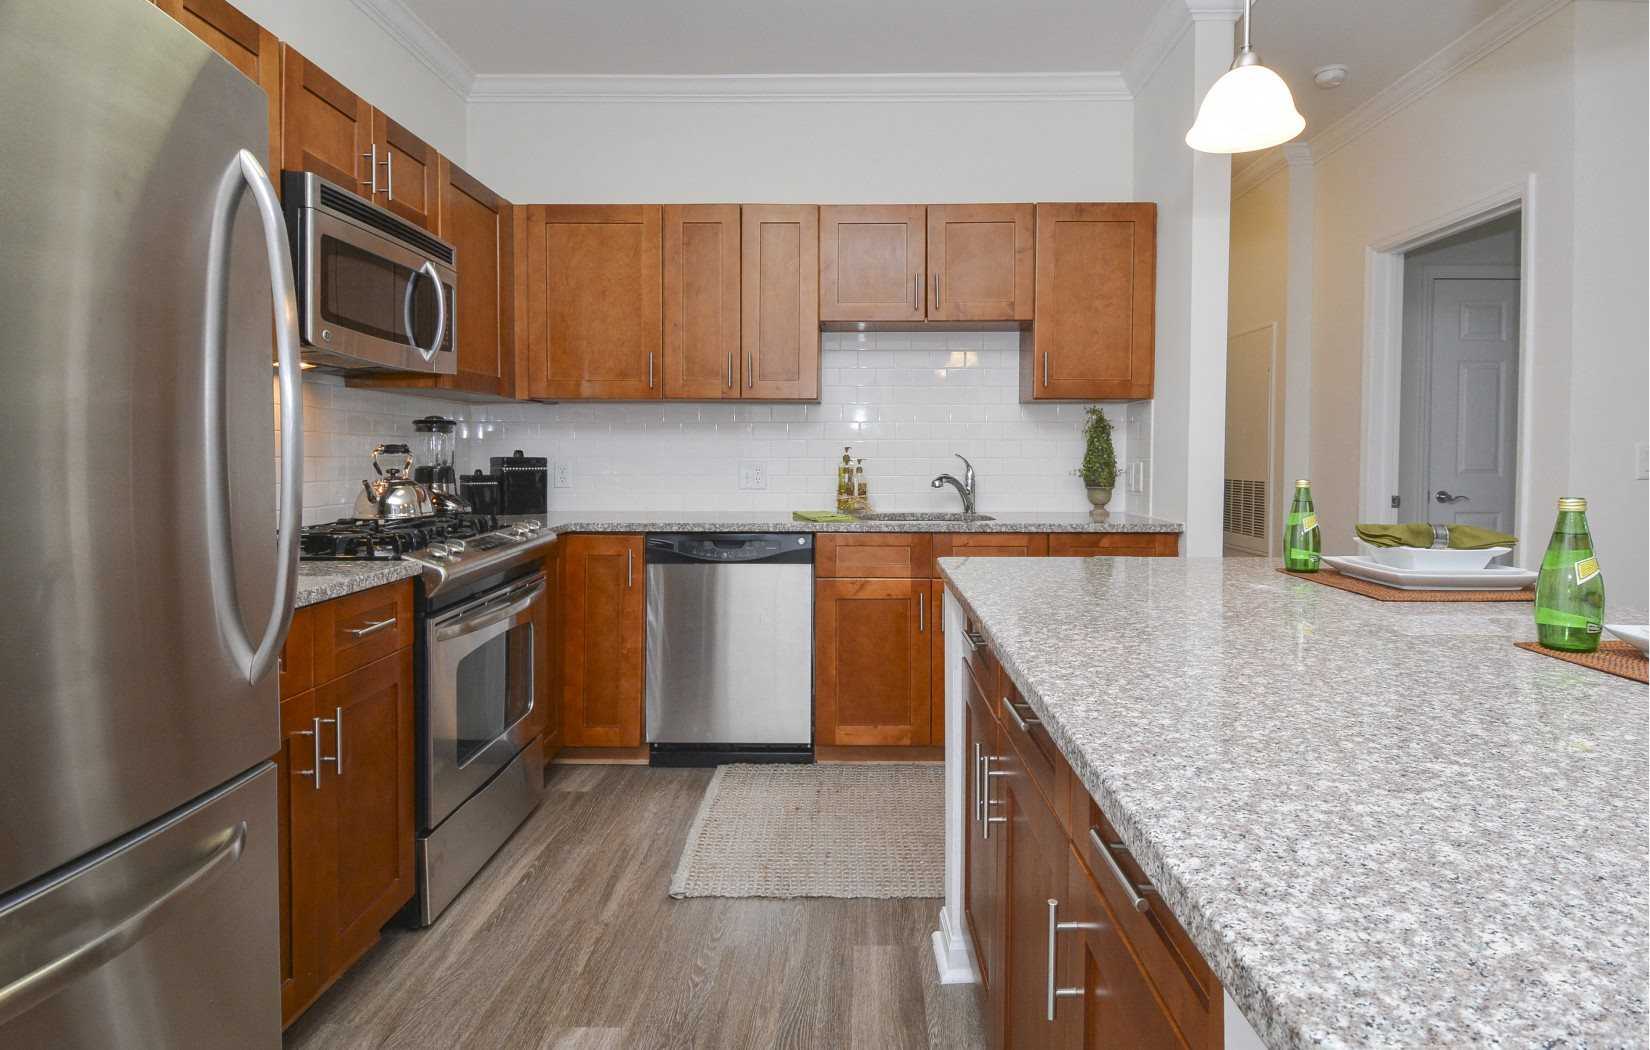 energy star appliances and gas stoves in kitchen | Glenview House Apartments Stamford CT